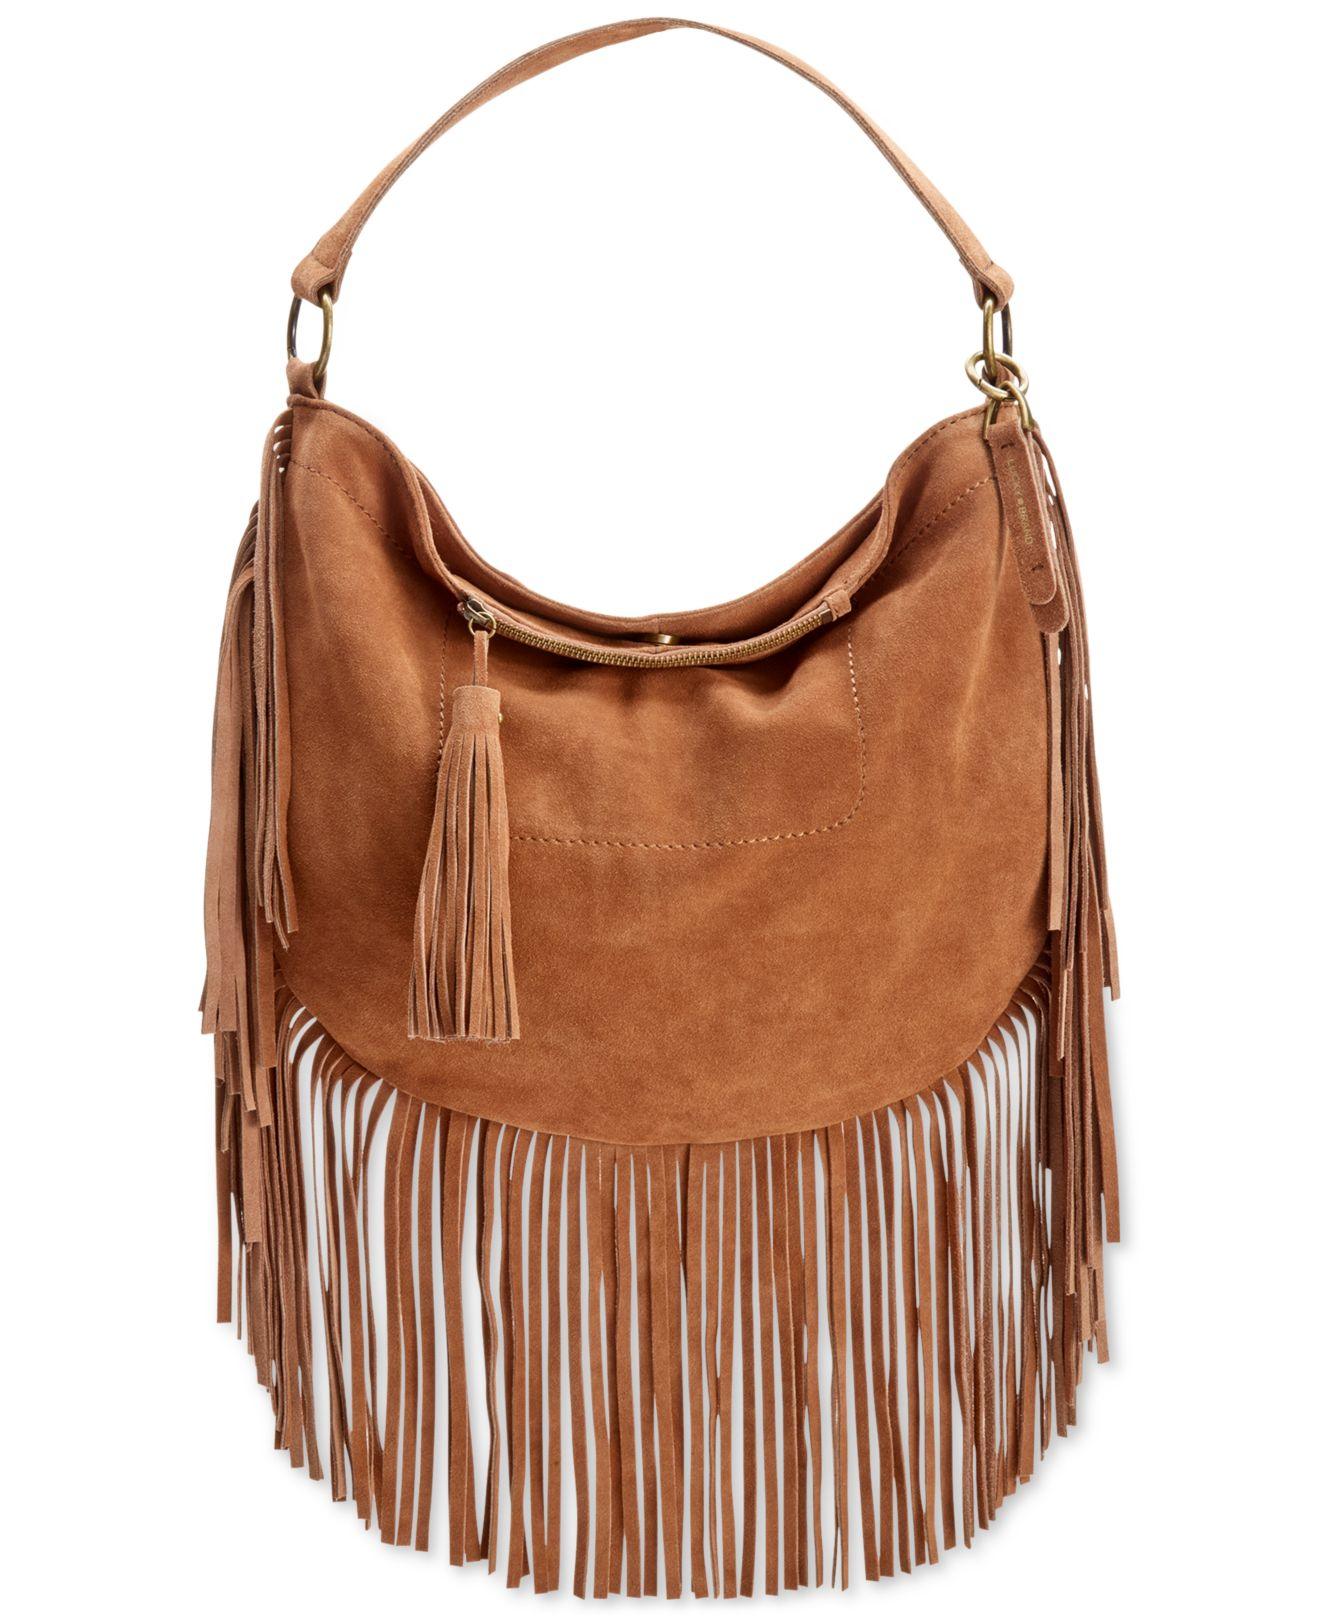 0d22df7a1f74 Lyst - Lucky Brand Rickey Suede Fringe Crossbody Hobo in Brown